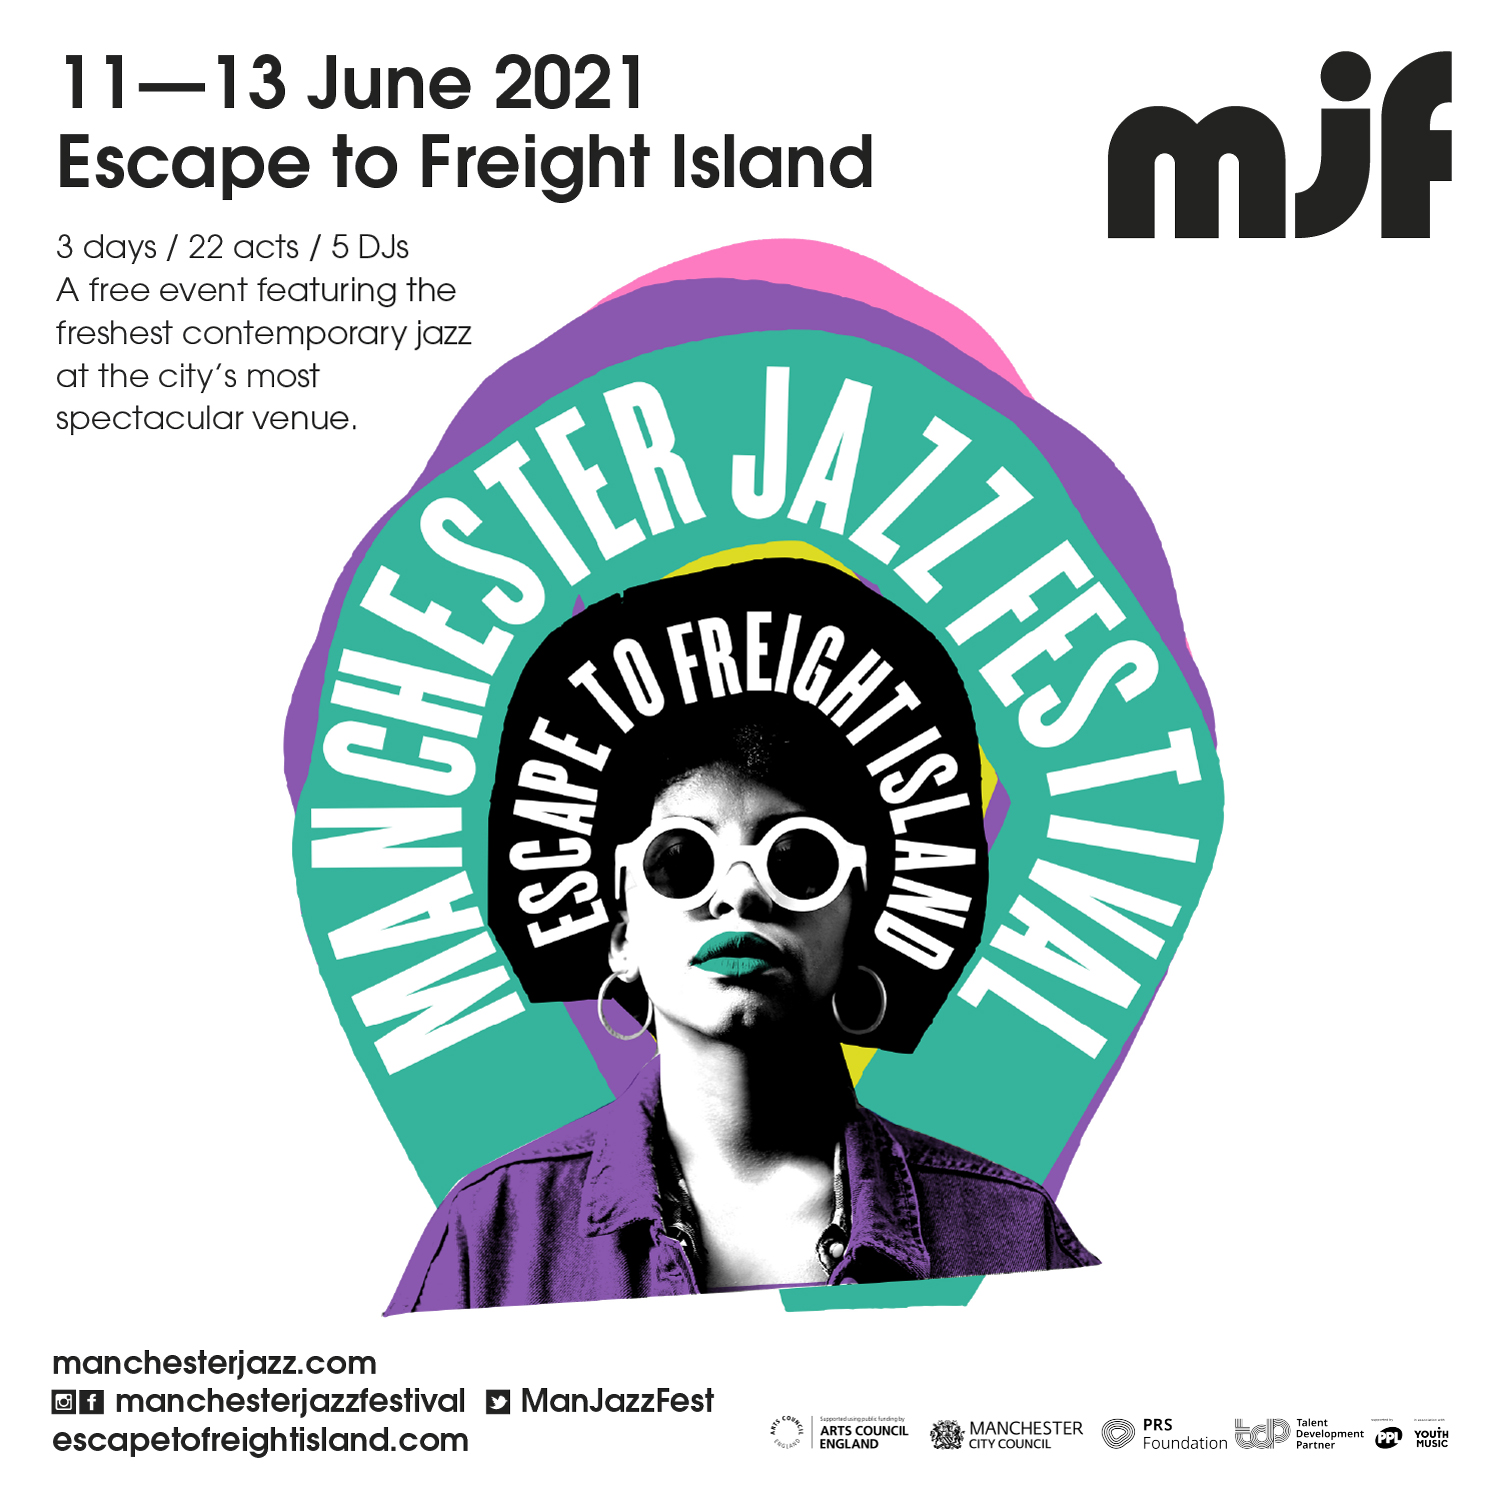 mjf heads to Freight Island this June!